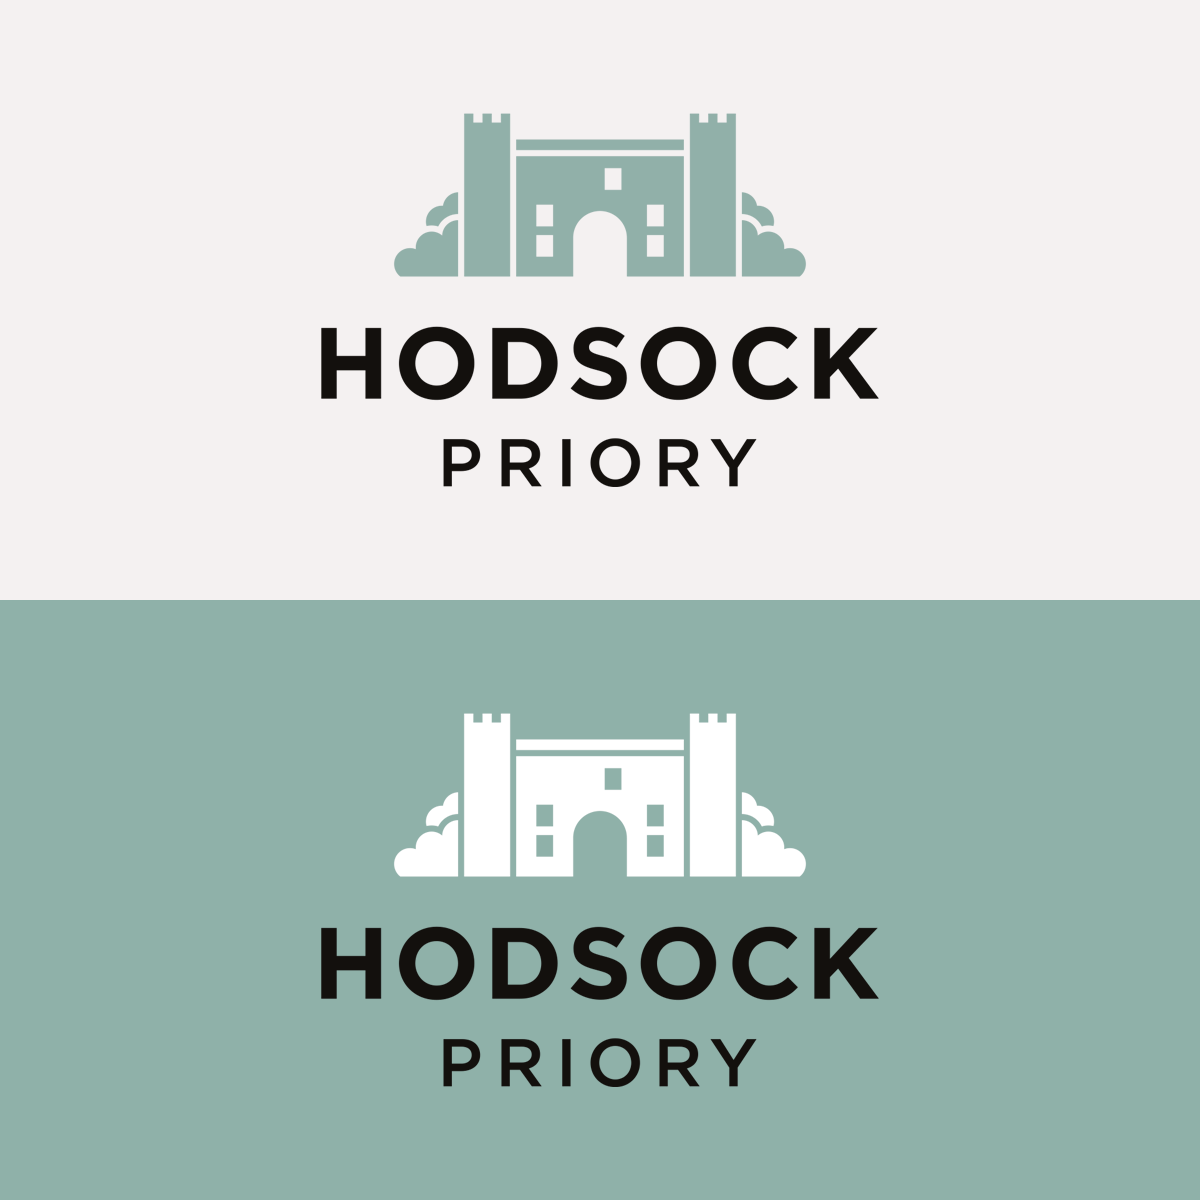 Identity for Hodsock Priory, Hodsock Priory logo